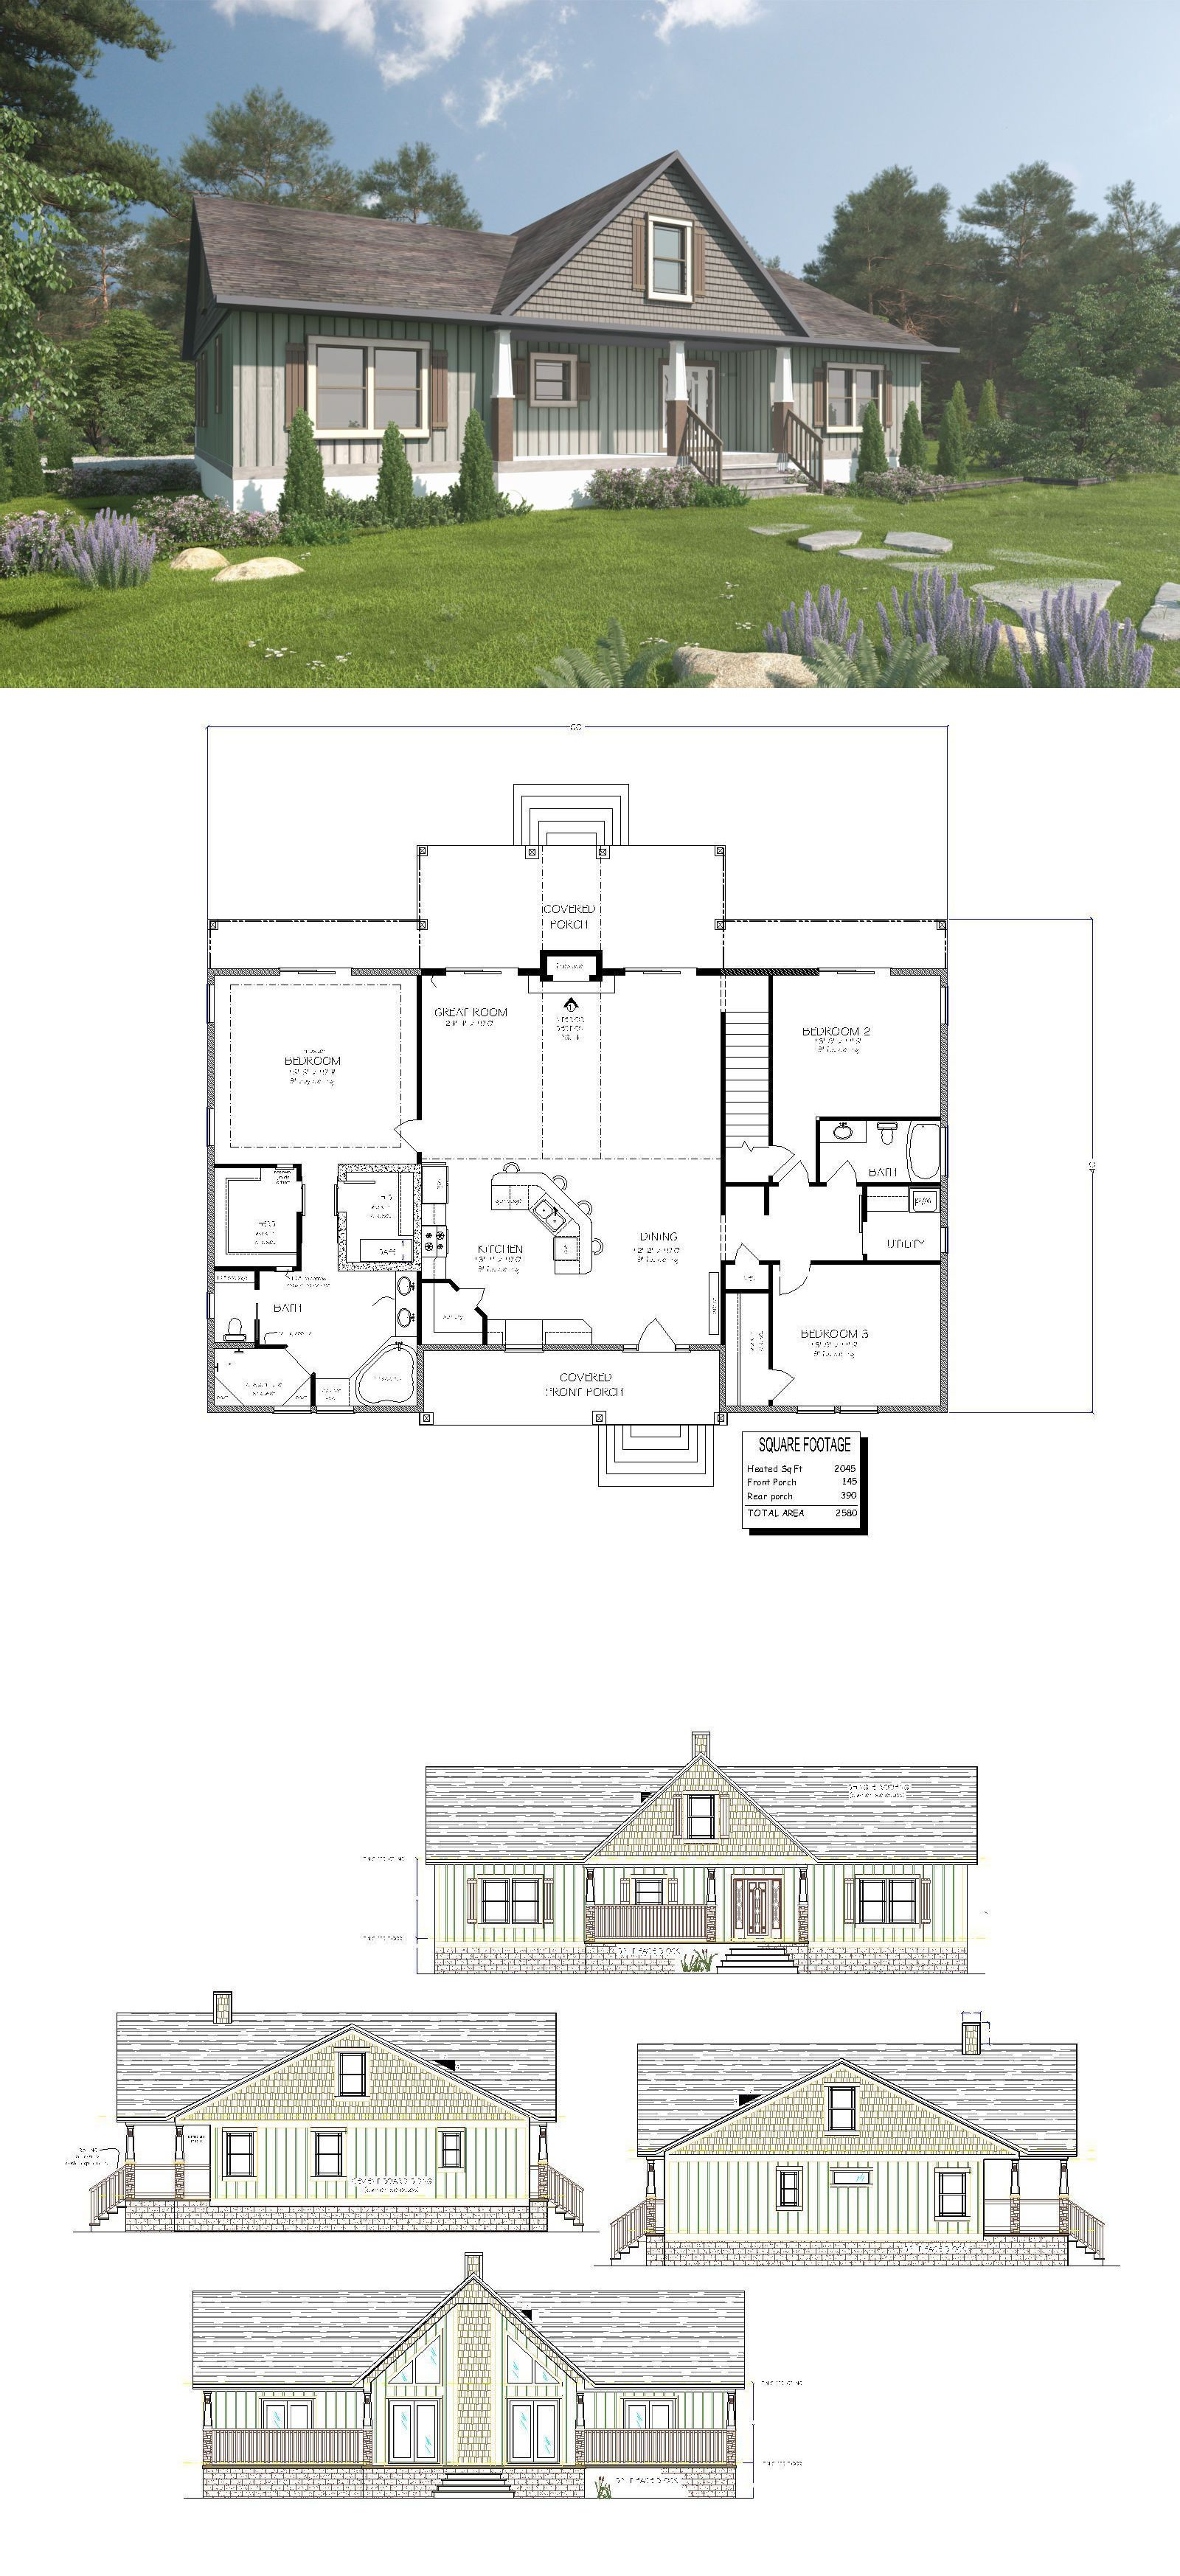 Building Plans And Blueprints 42130 Custom Home House Plan 2050 Square Foot Buy It Now Only 75 On Ebay House Plans Custom Homes Building Plans